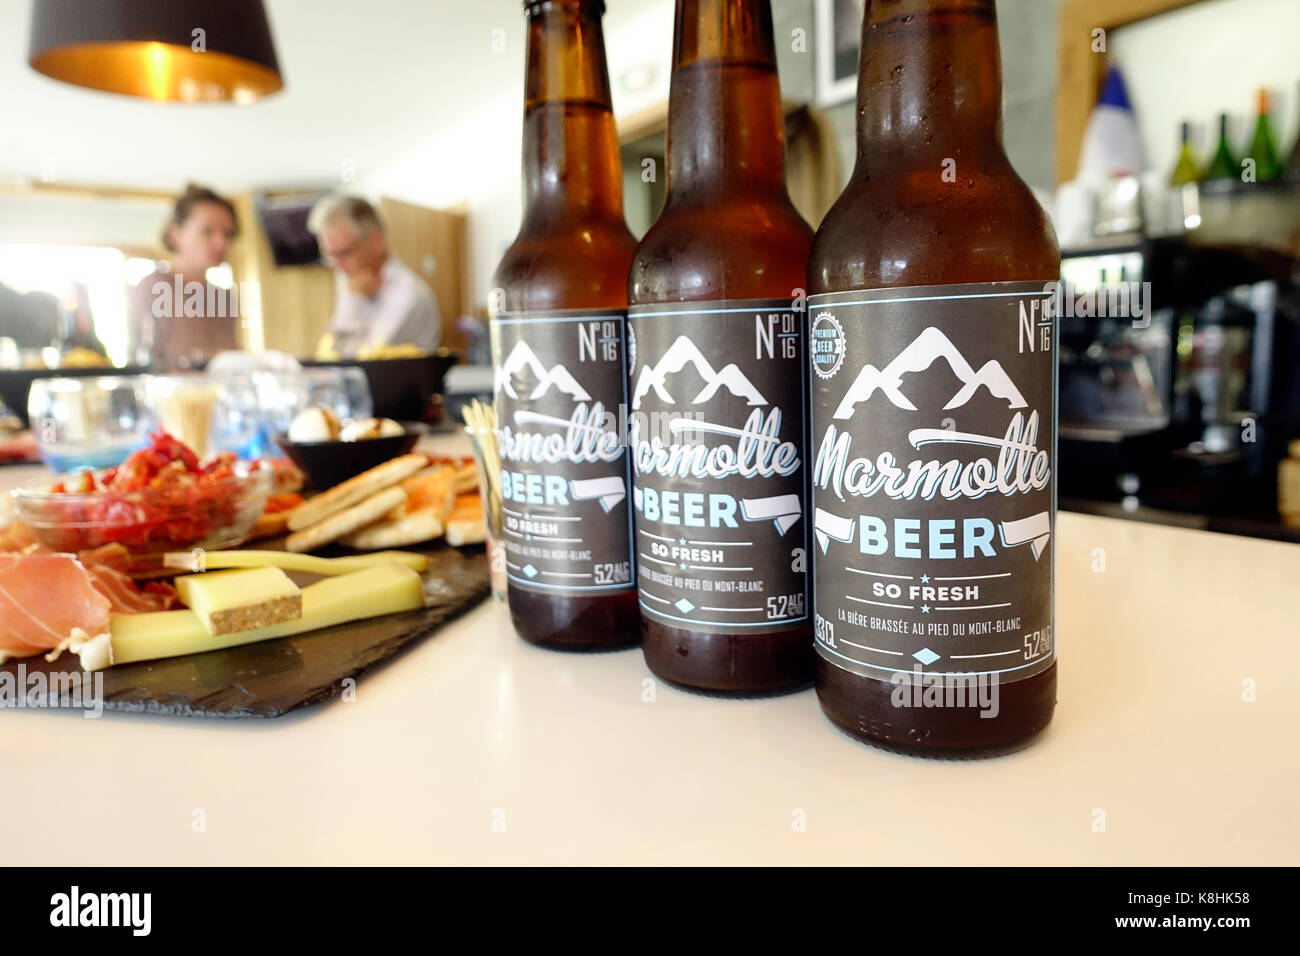 Marmotte beer. tradional beer from the french alps. france. - Stock Image